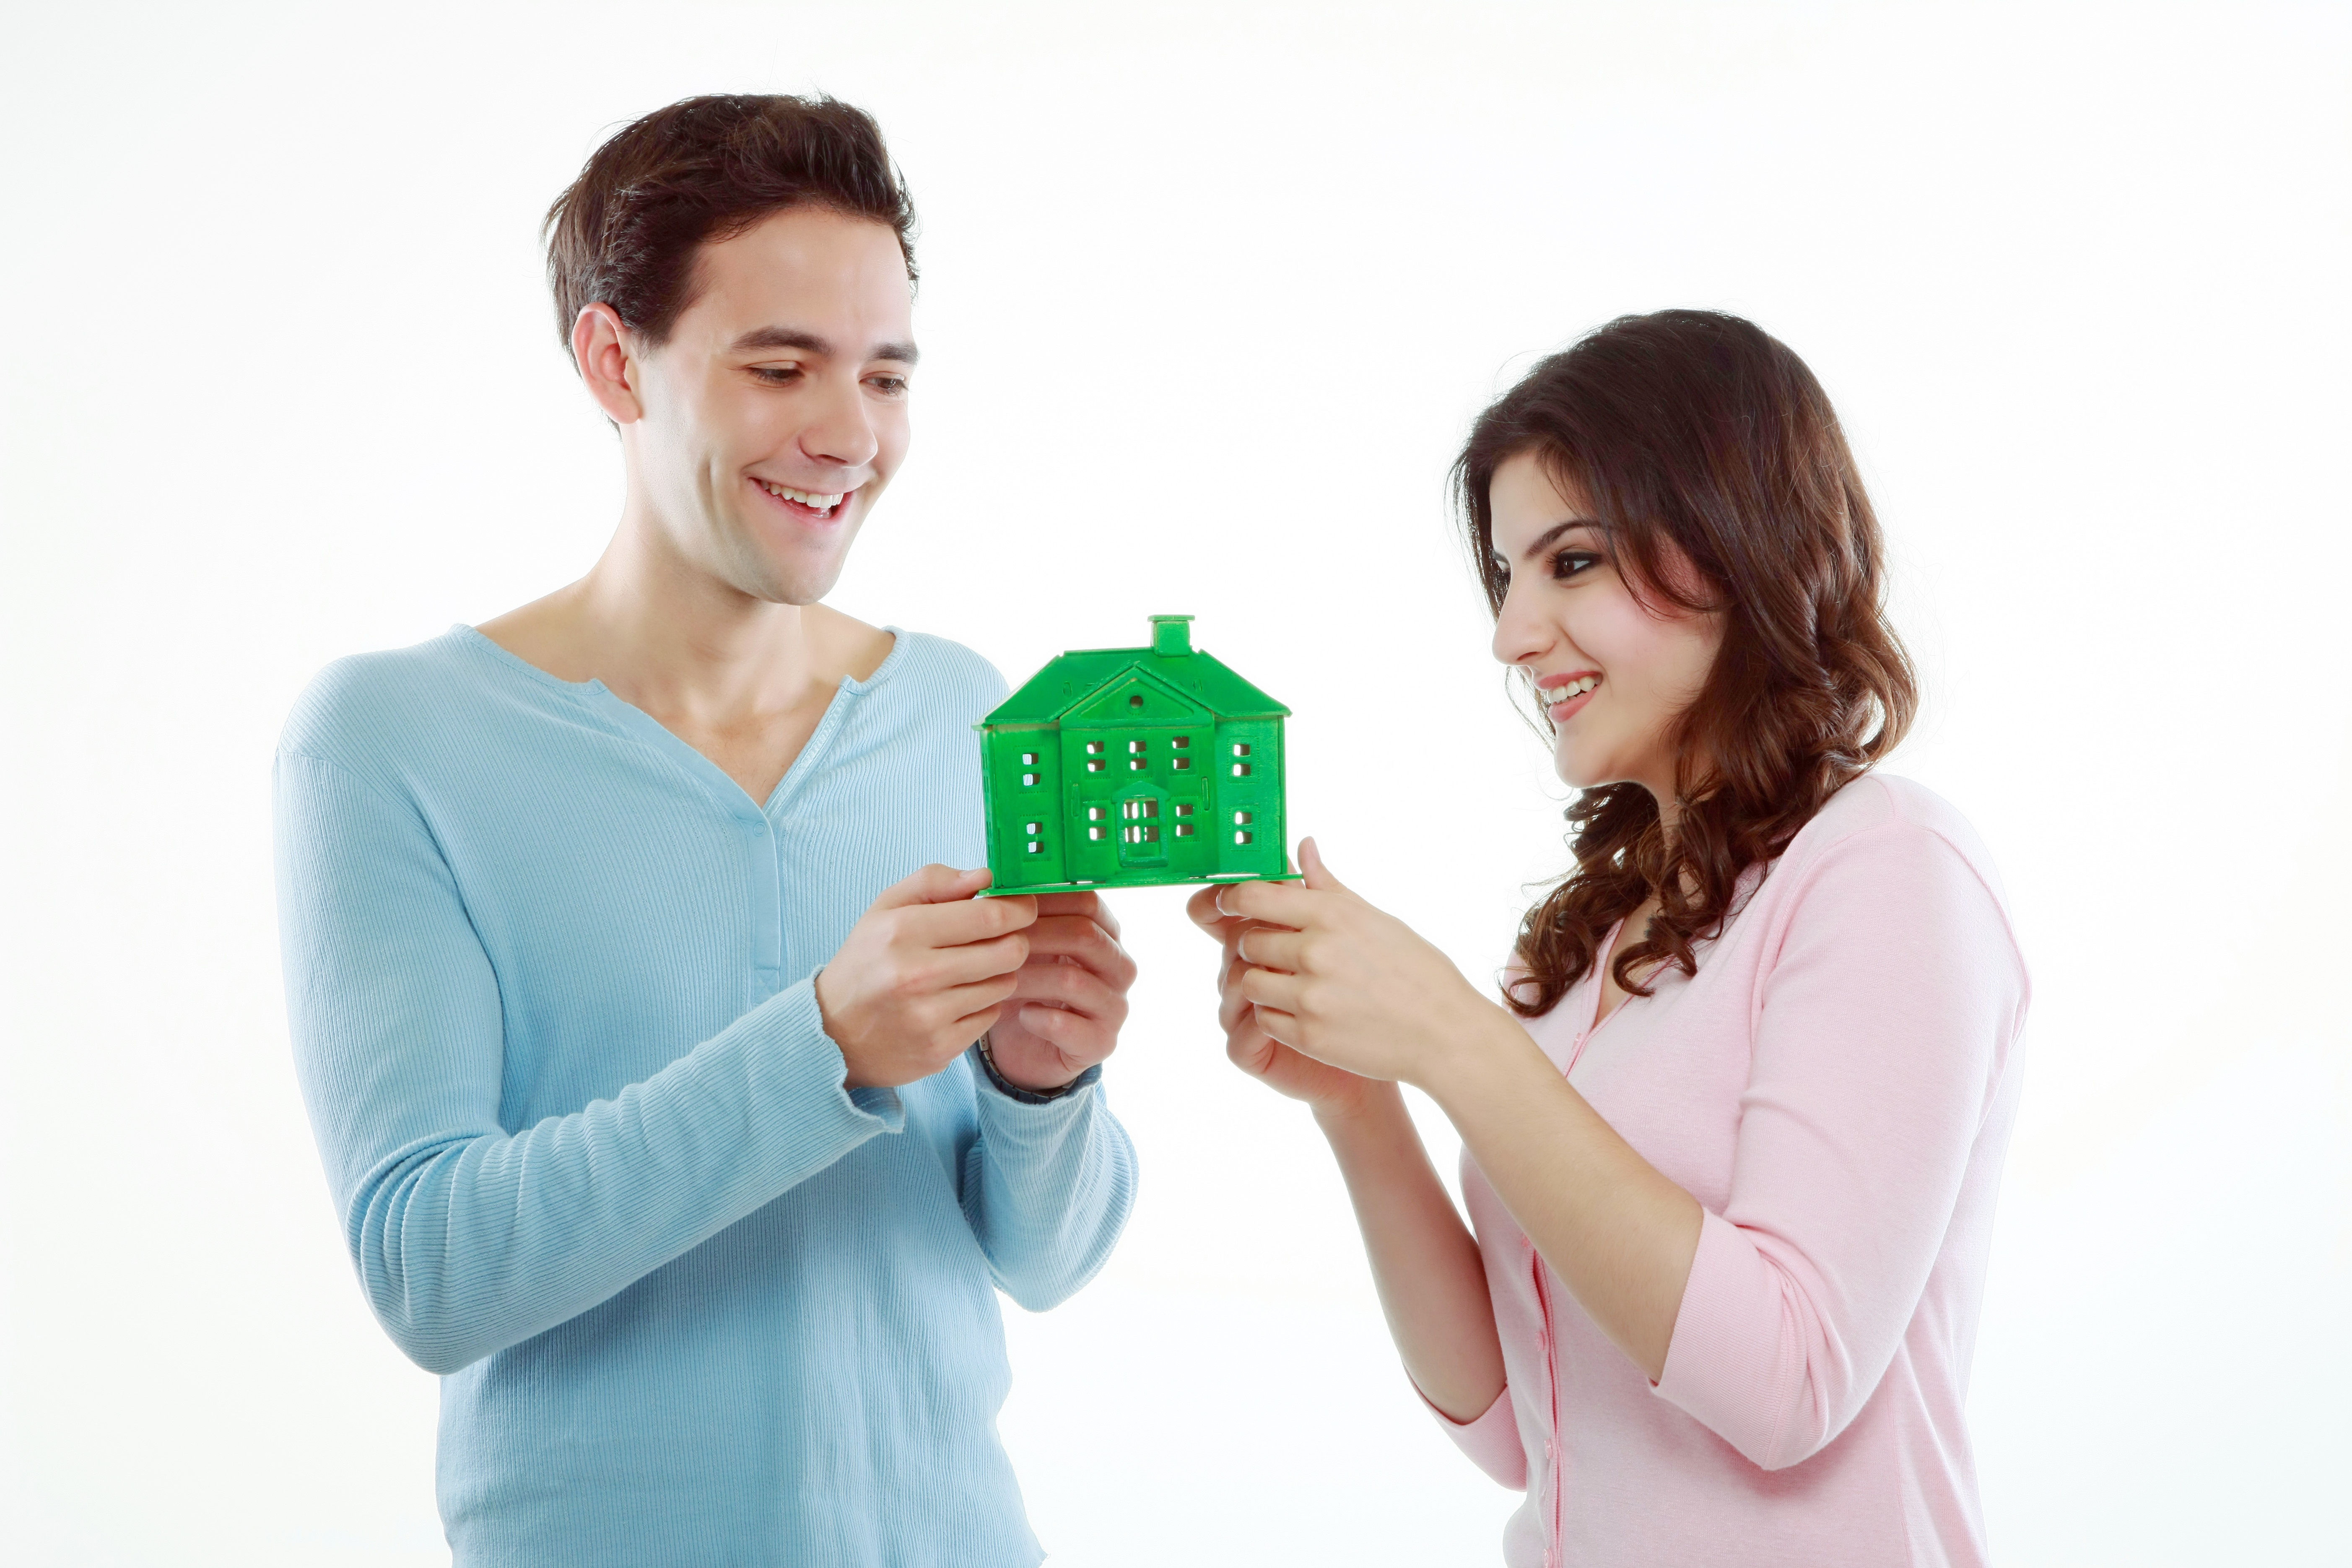 Mortgage Approval For First Time Buyers Increases